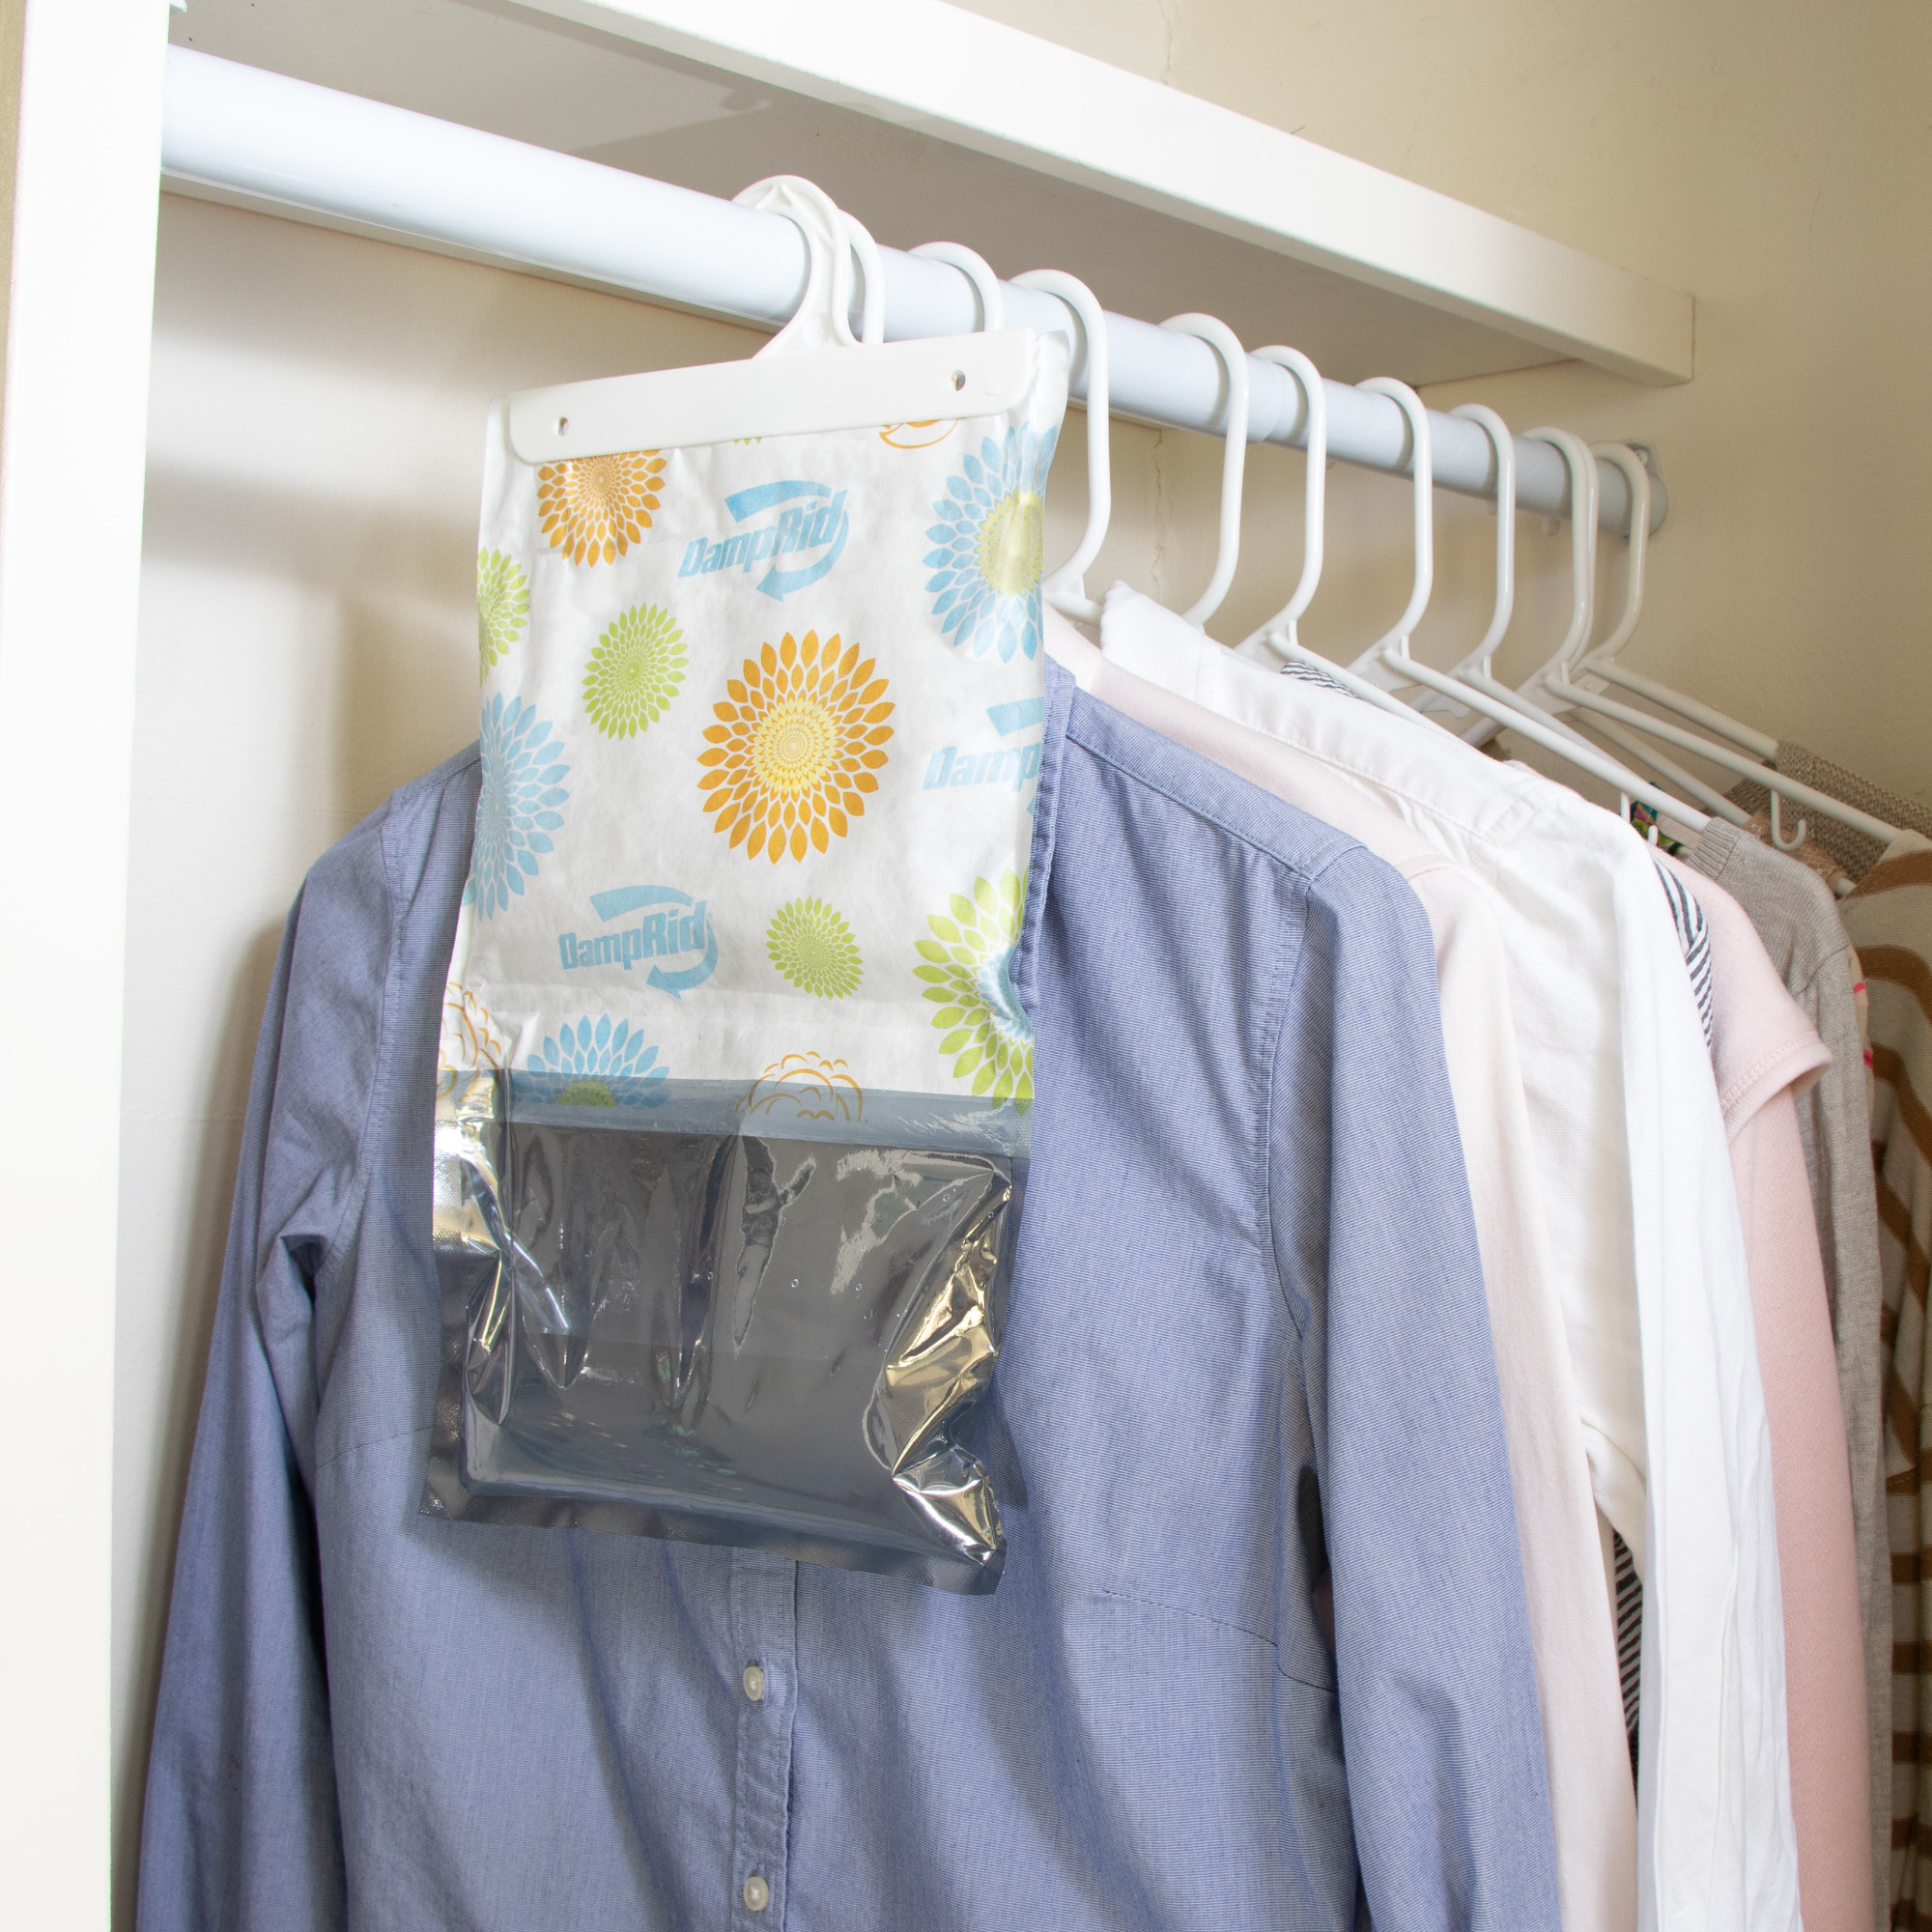 The damp absorber, which is a small plastic bag, filled with fluid, and topped with a built-in hanger, so that you can easily hang it in a closet, from a hook, etc